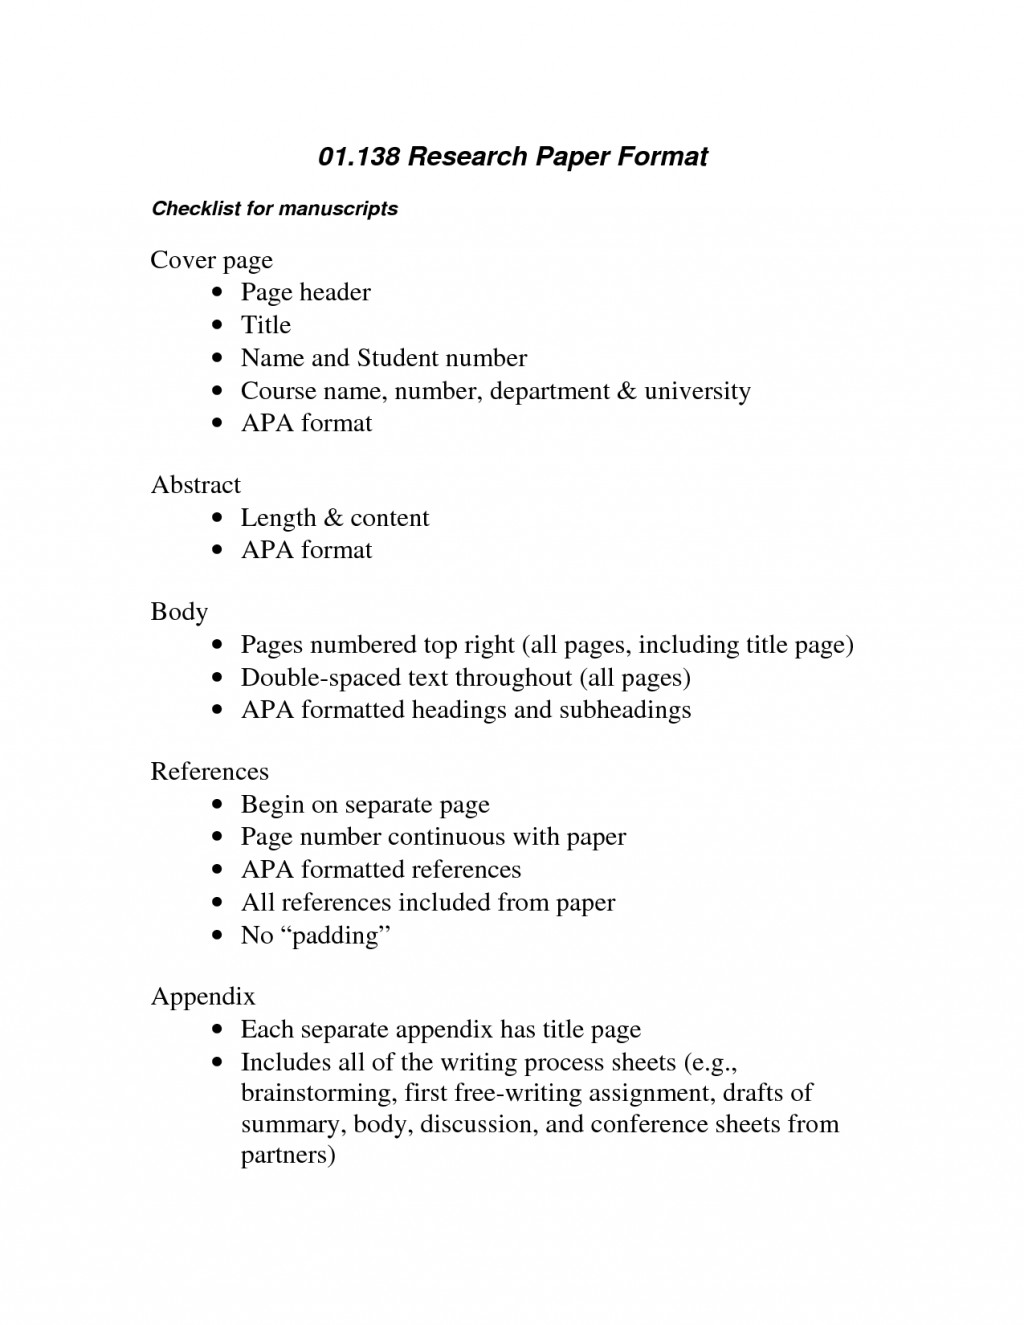 003 Apa Writing Research Paper Surprising Title Page Example Format 2015 Outline Sample Large